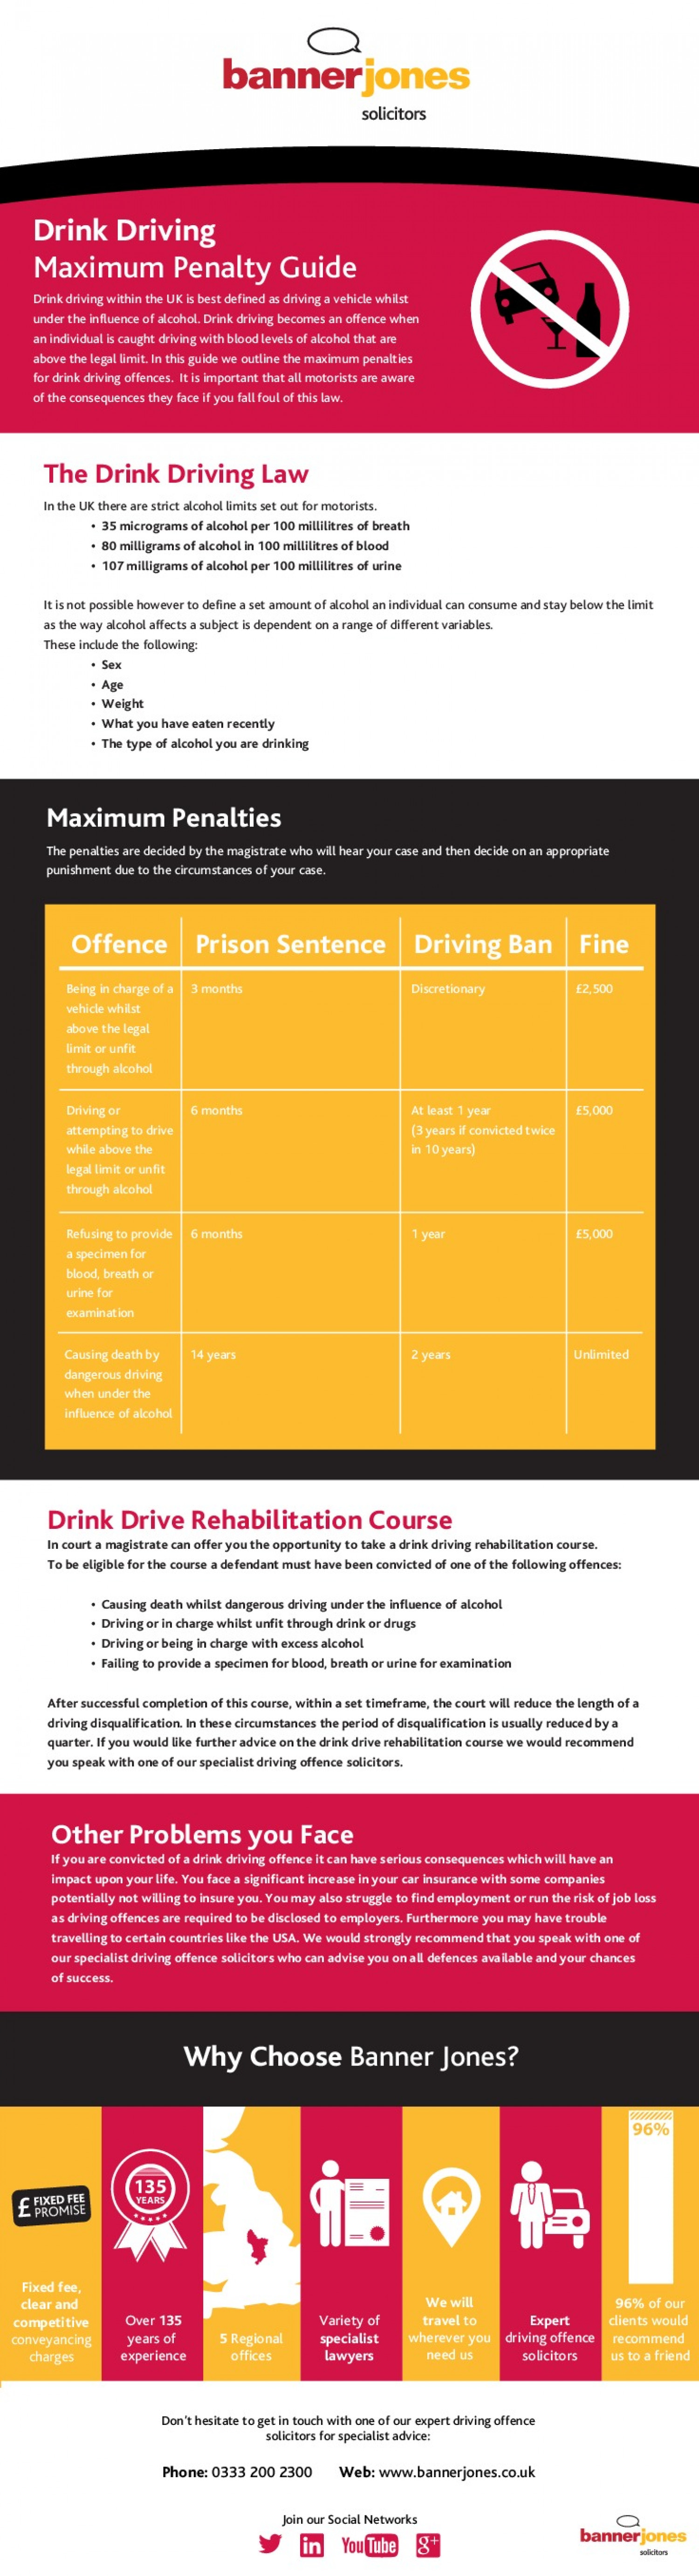 Driving Offences - Drink Driving Penalties Infographic